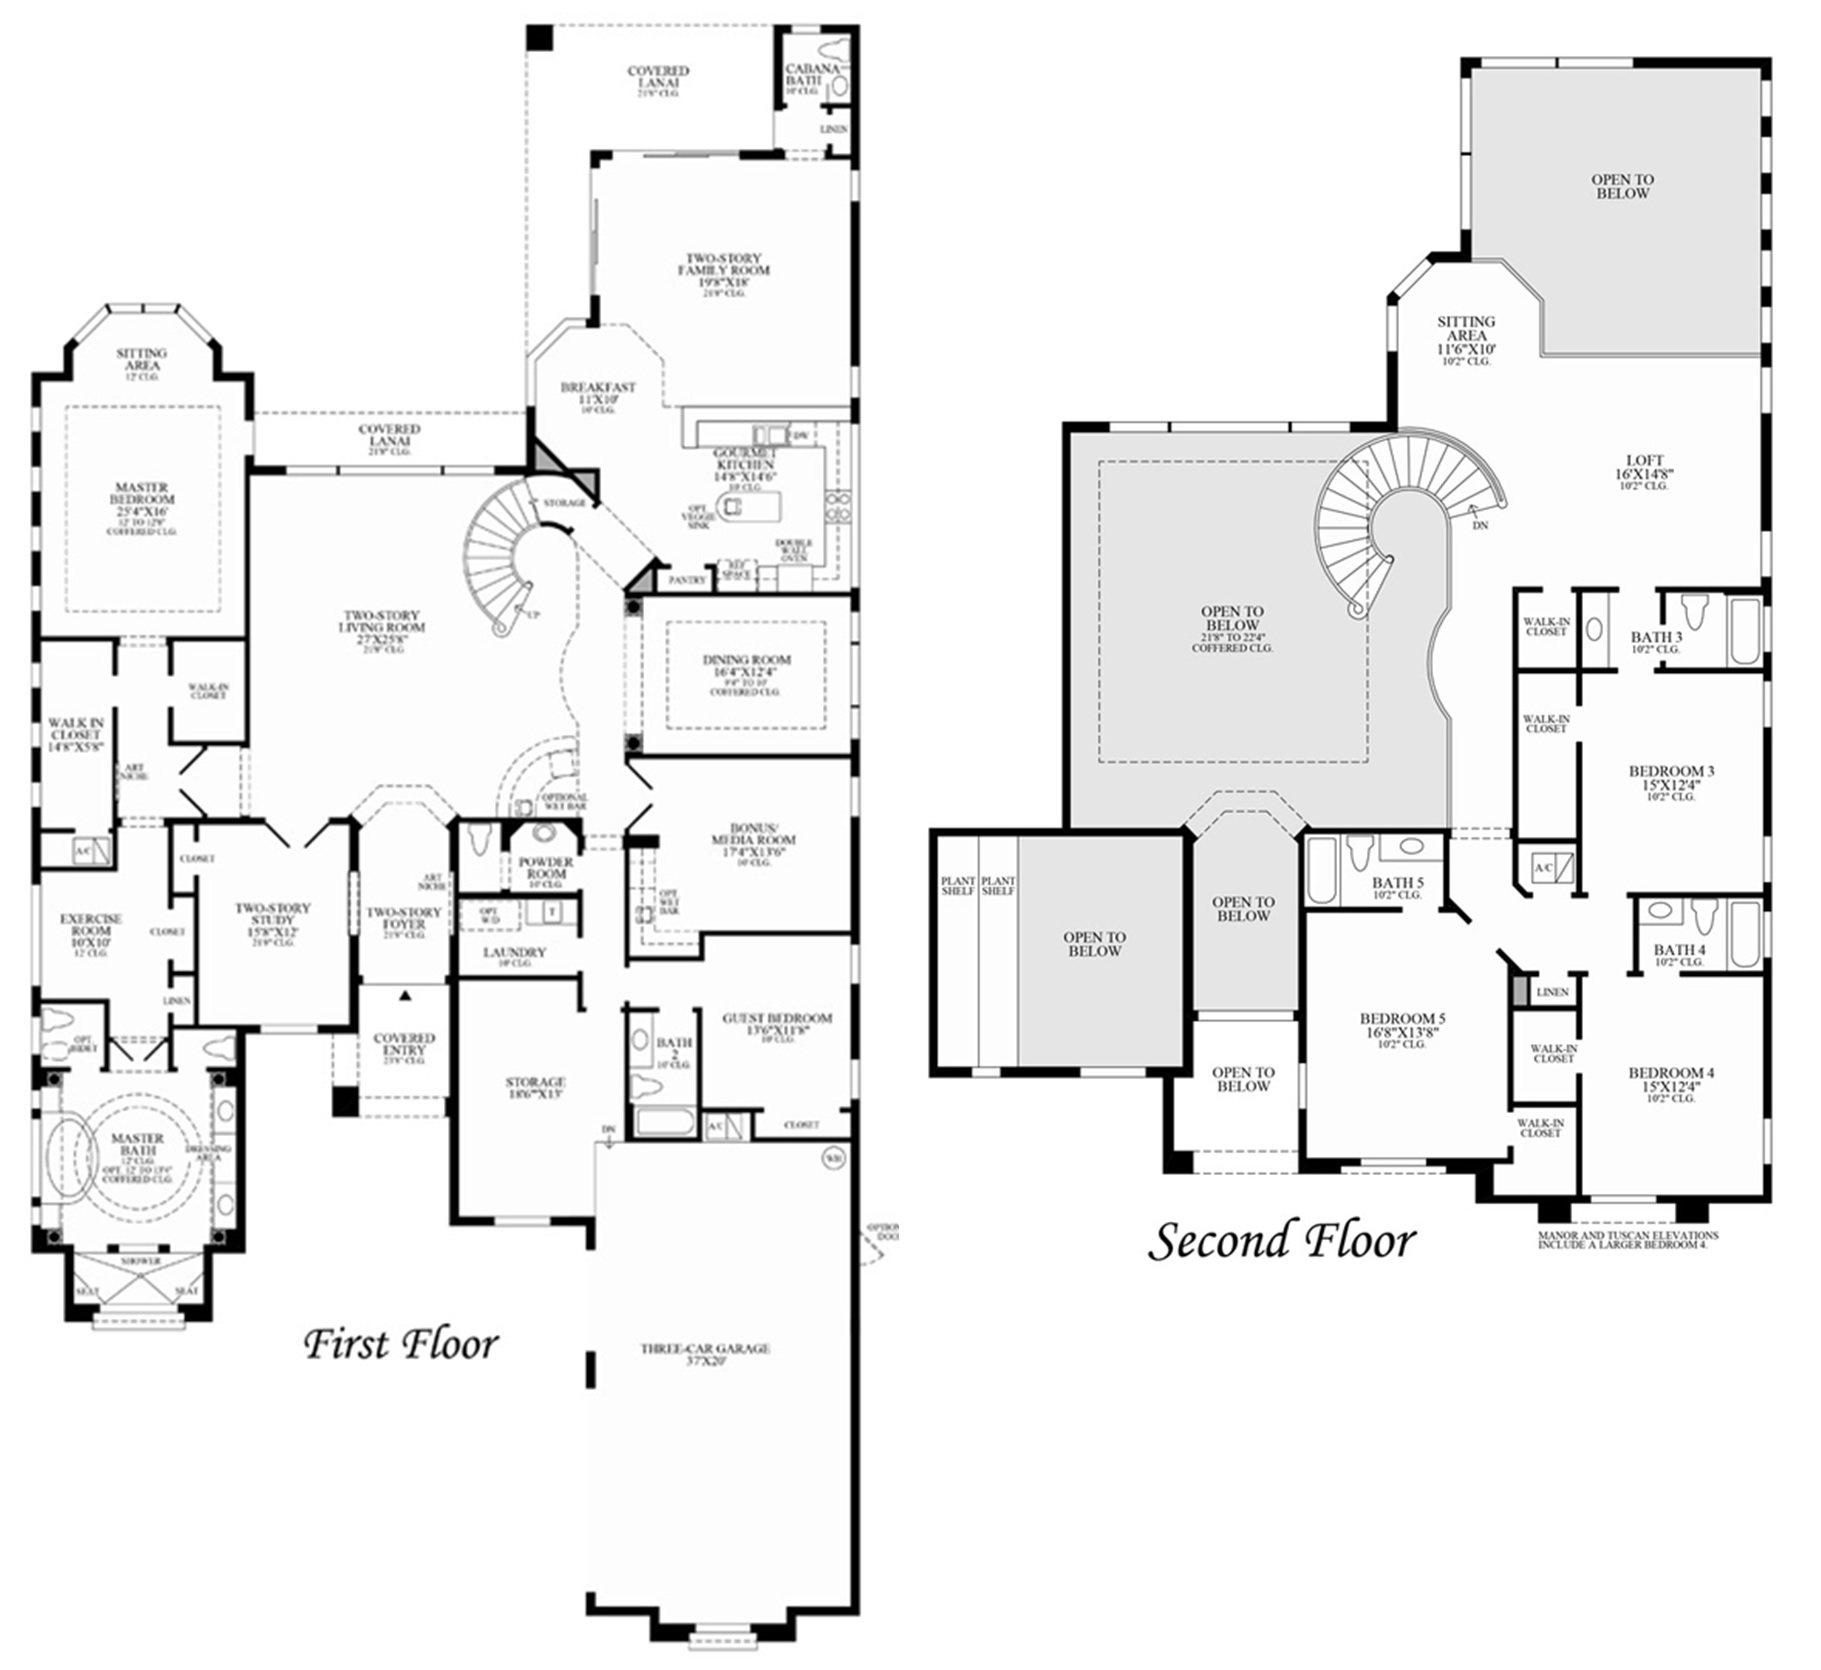 Housing Floor Plans Layout Bellaria In Windermere Is A New Community Of Luxury Homes